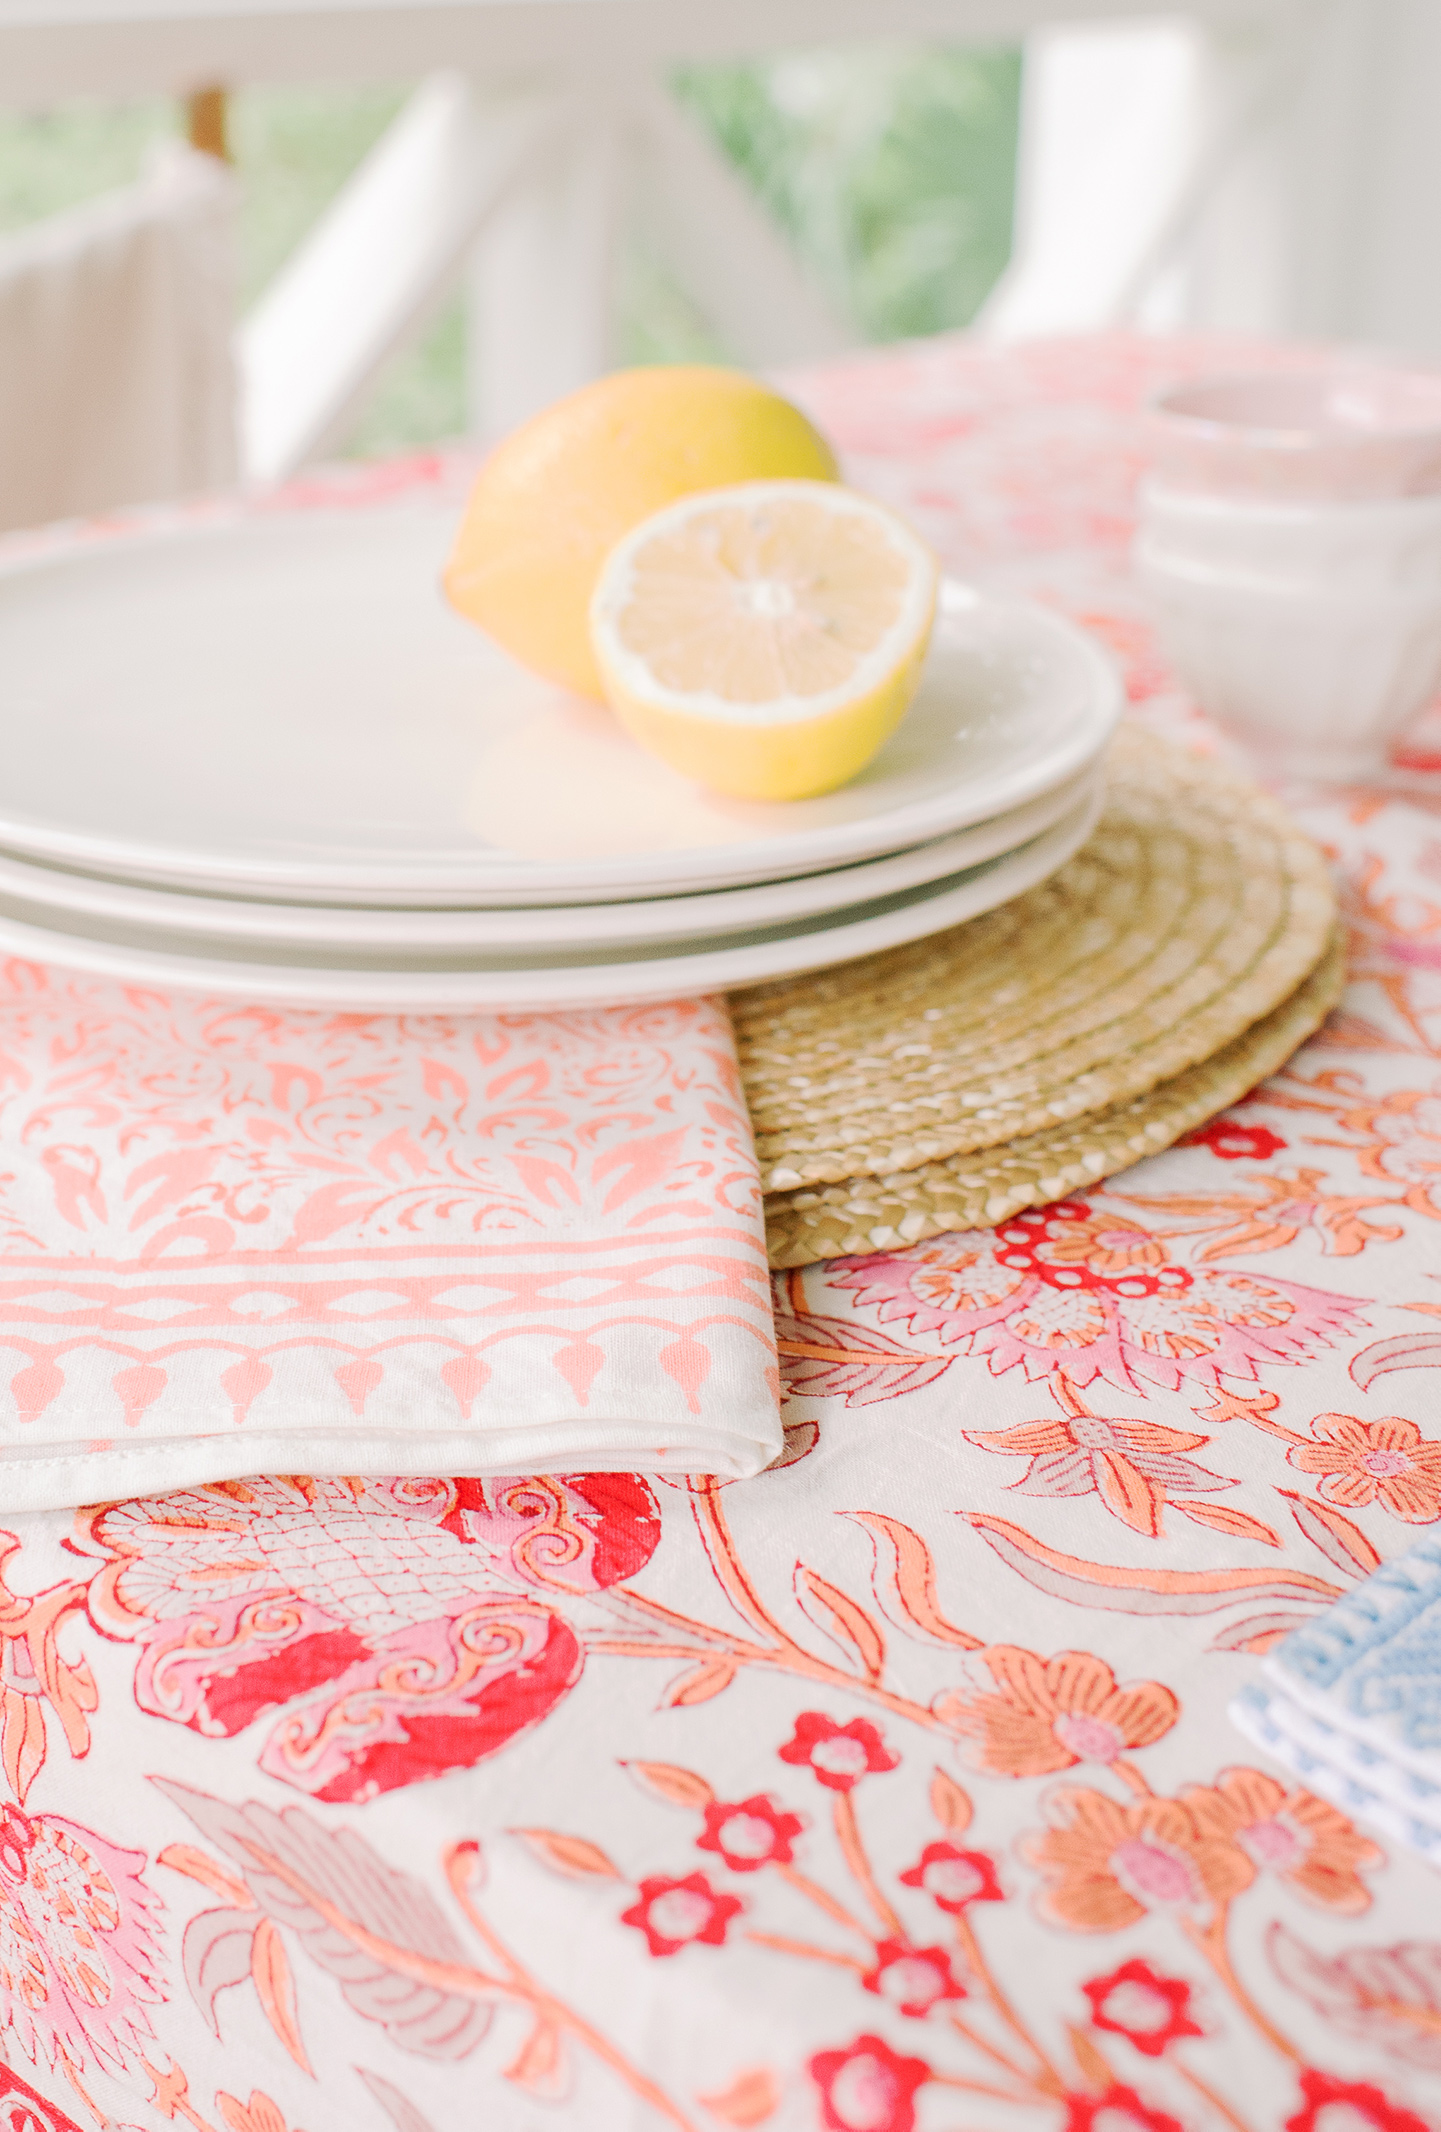 Woven Placemat + Coral Patterned Linen Tablecloth